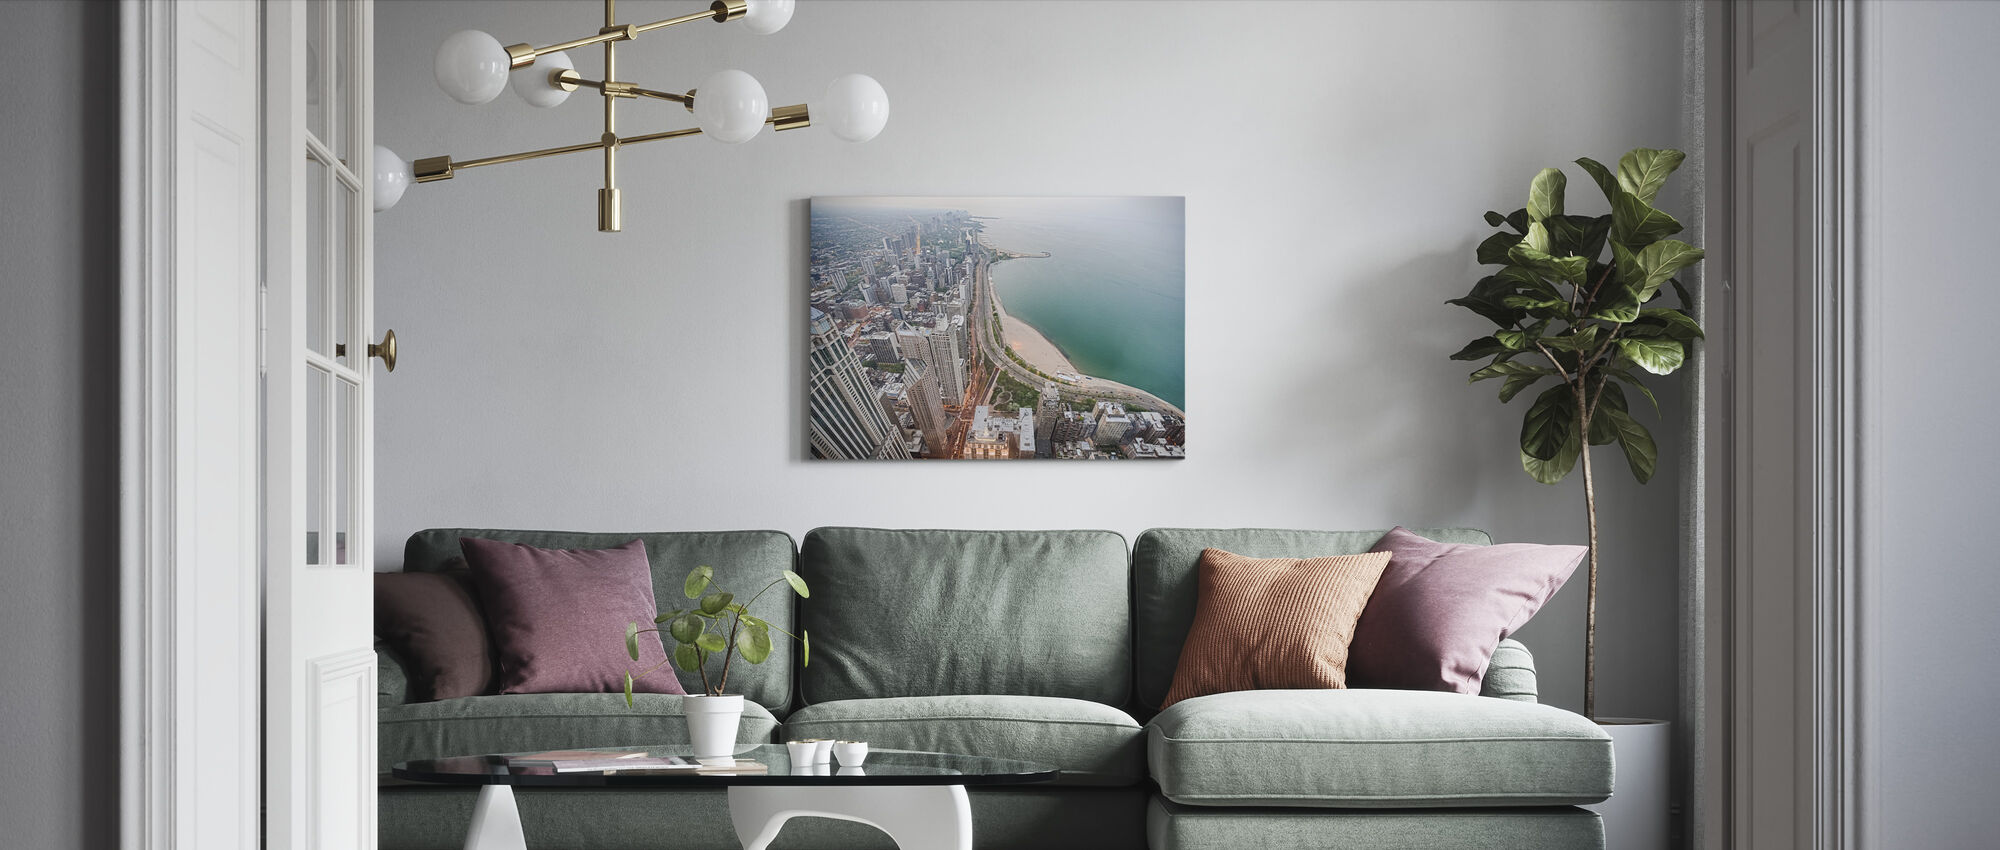 View from a Skyscraper in Chicago - Canvas print - Living Room